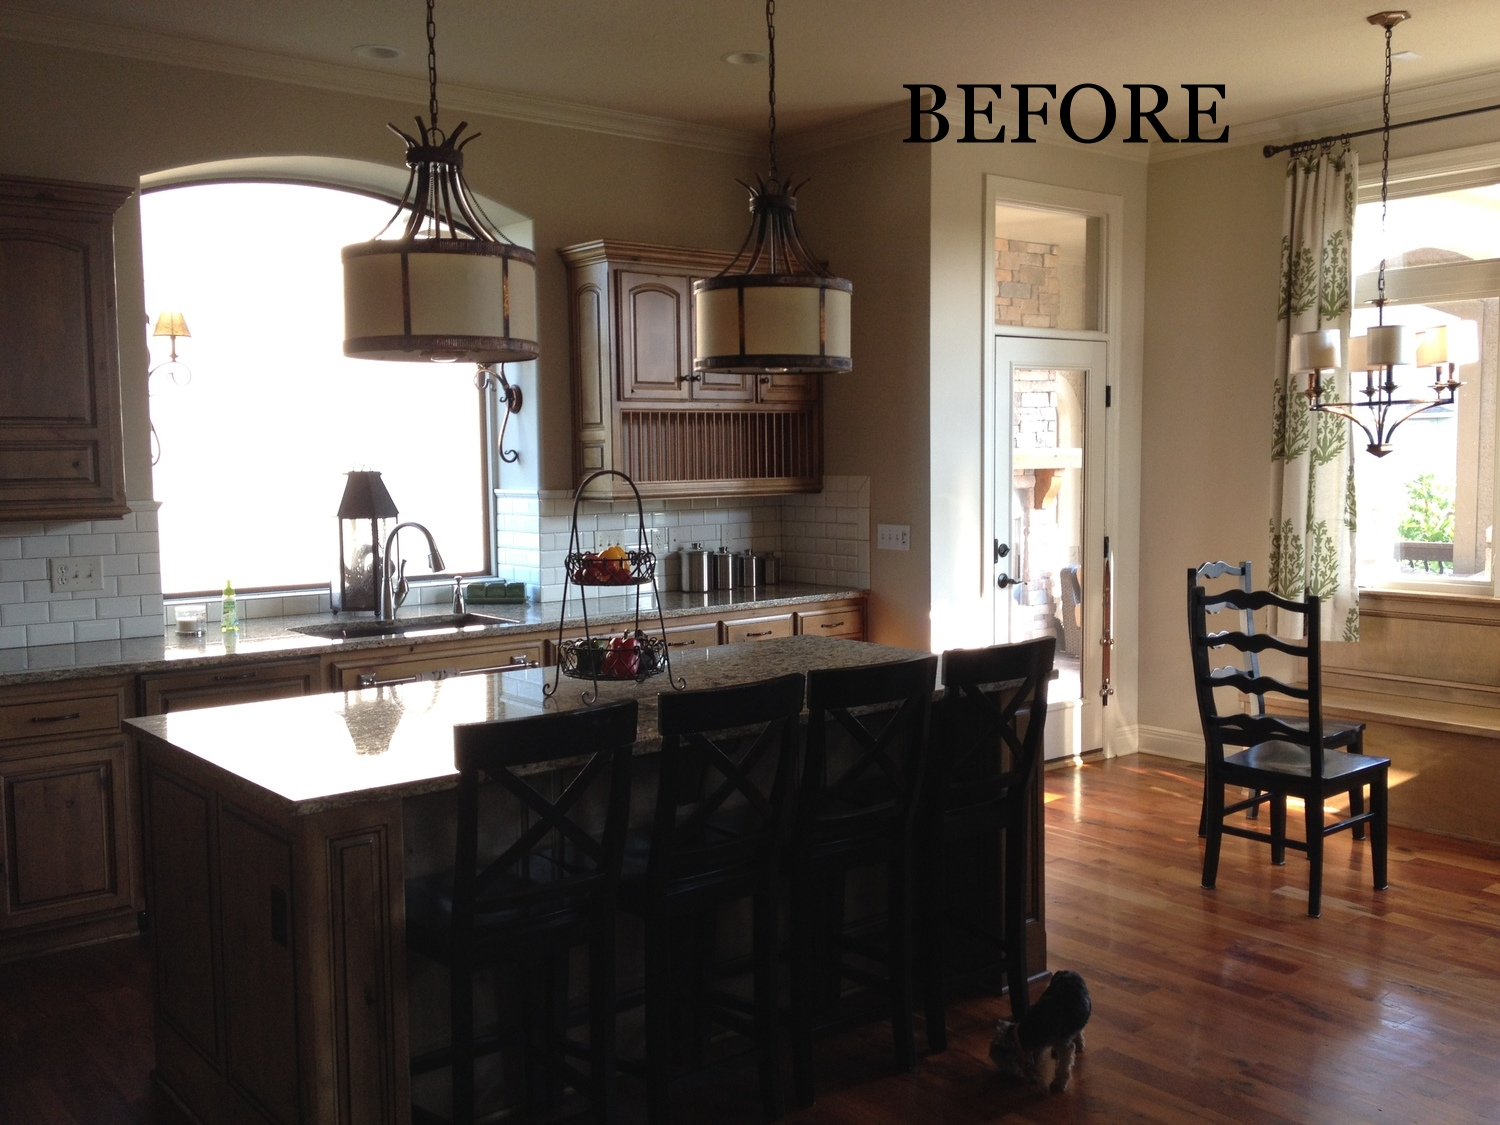 The traditional style lacked a wow factor and seemed dark. www.saranobledesigns.com